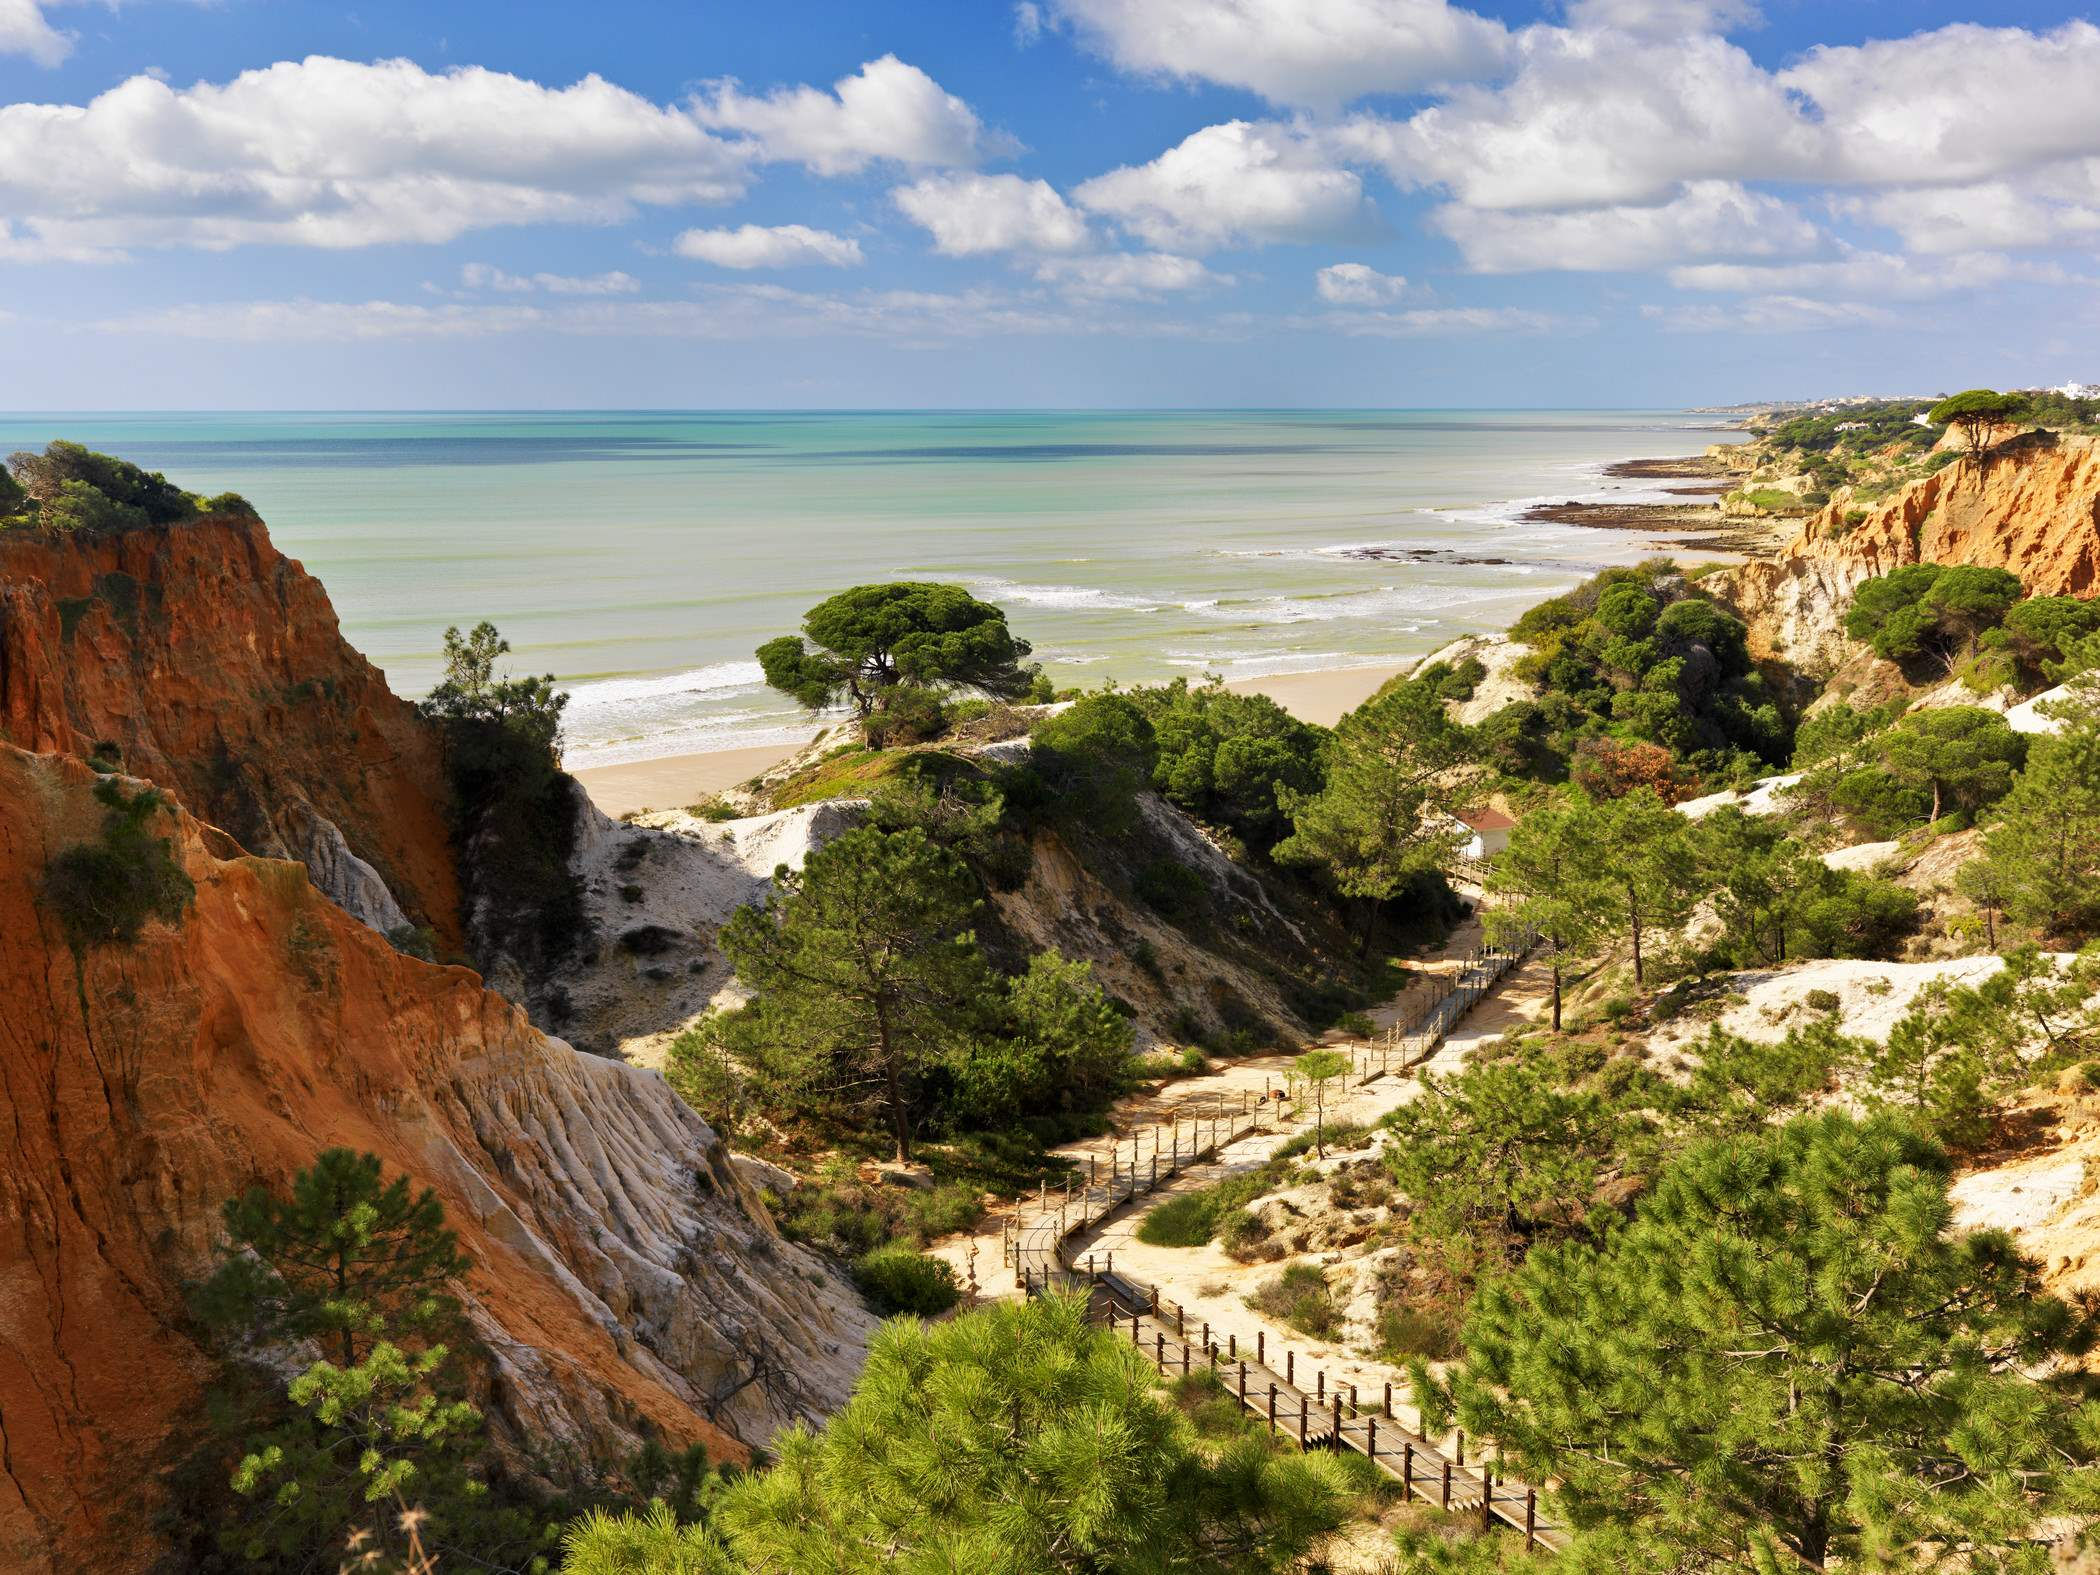 Pine Cliffs Terraces, 2 Bedroom, room only basis , 2 bedroom villa in Pine Cliffs Resort, Algarve Photo #45